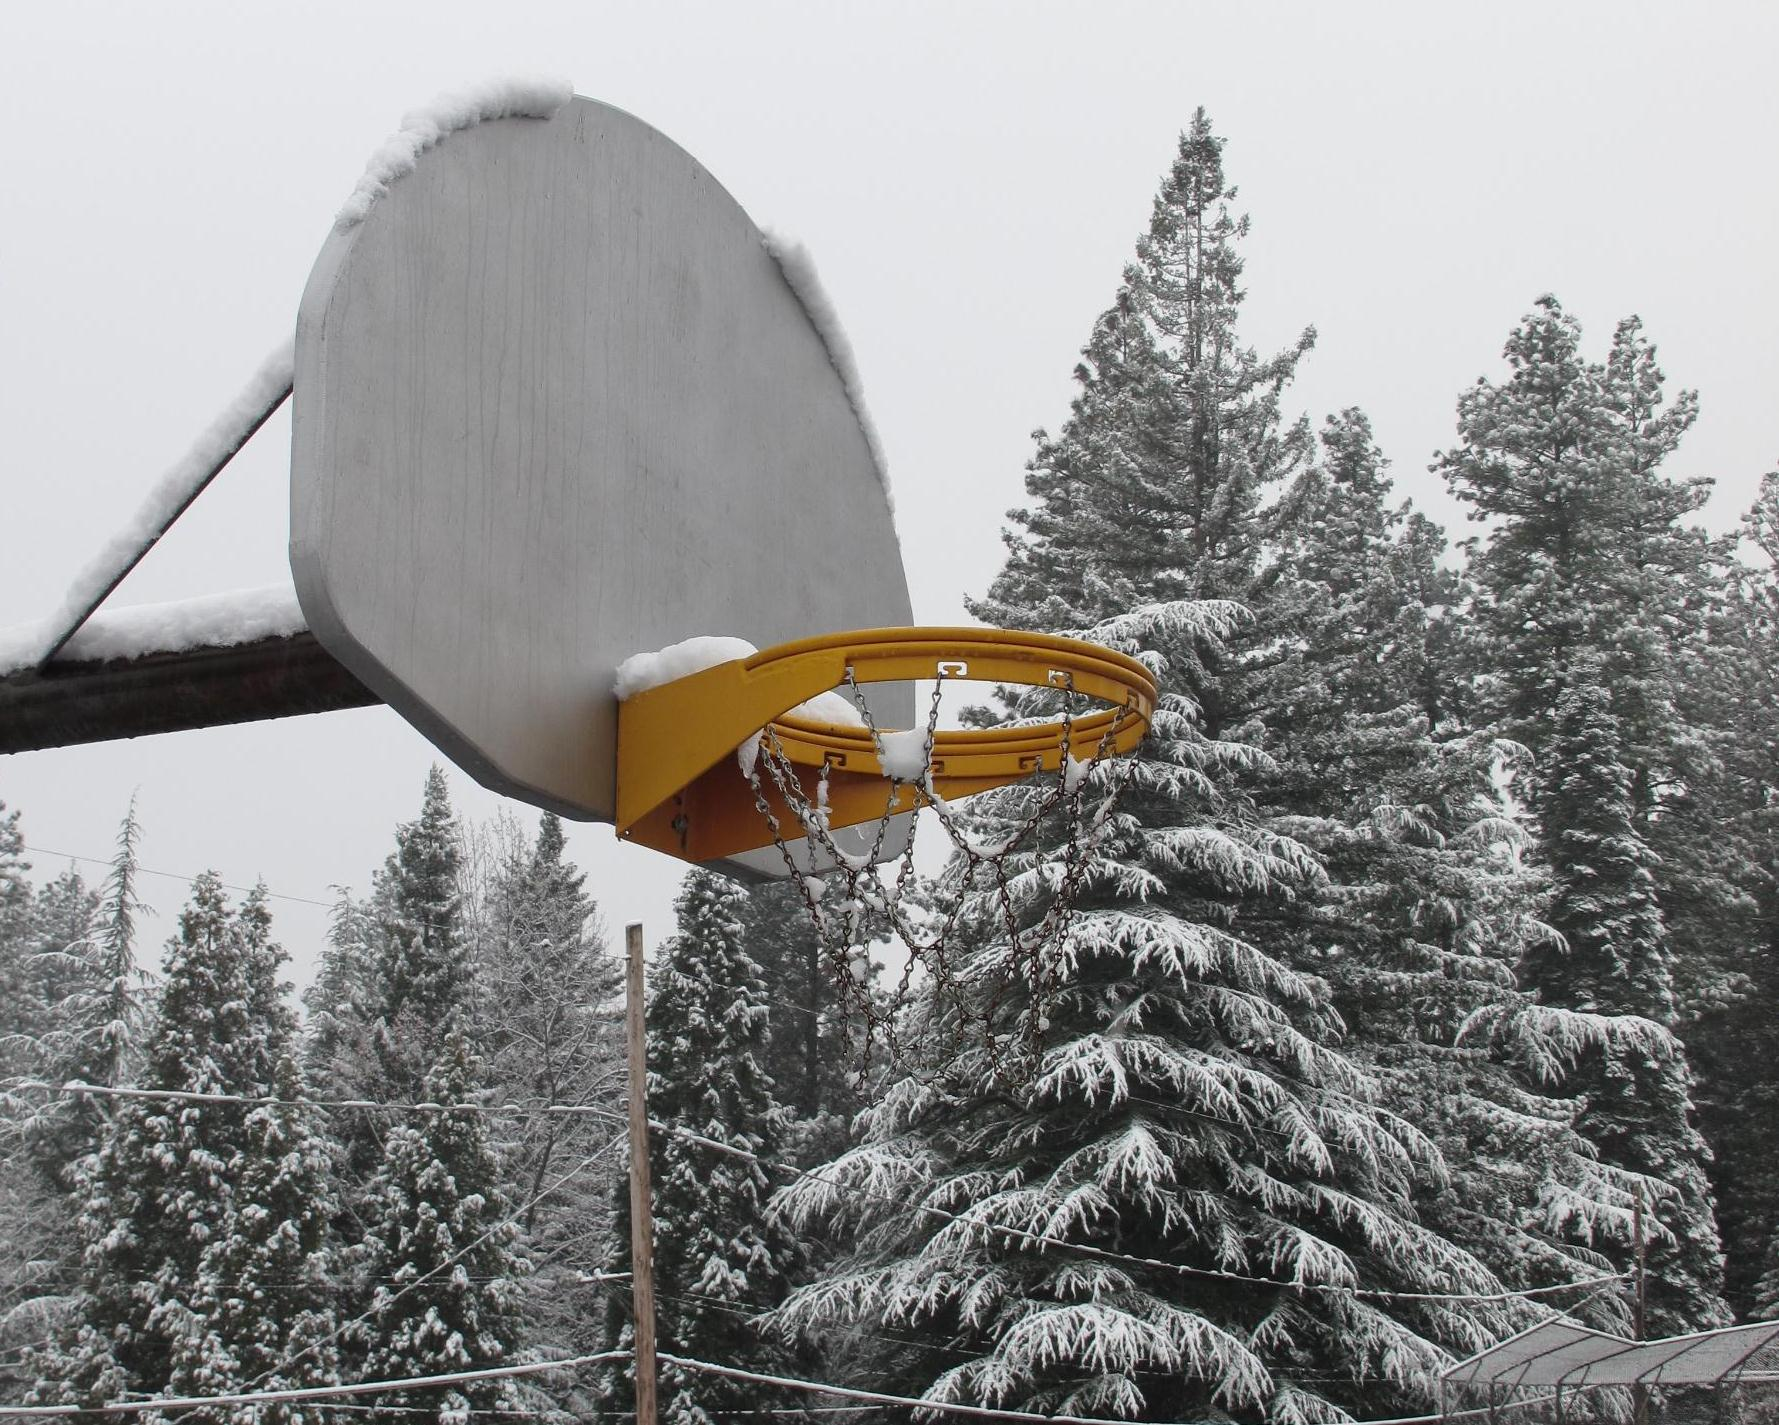 hoop in the winter author dreizler bob